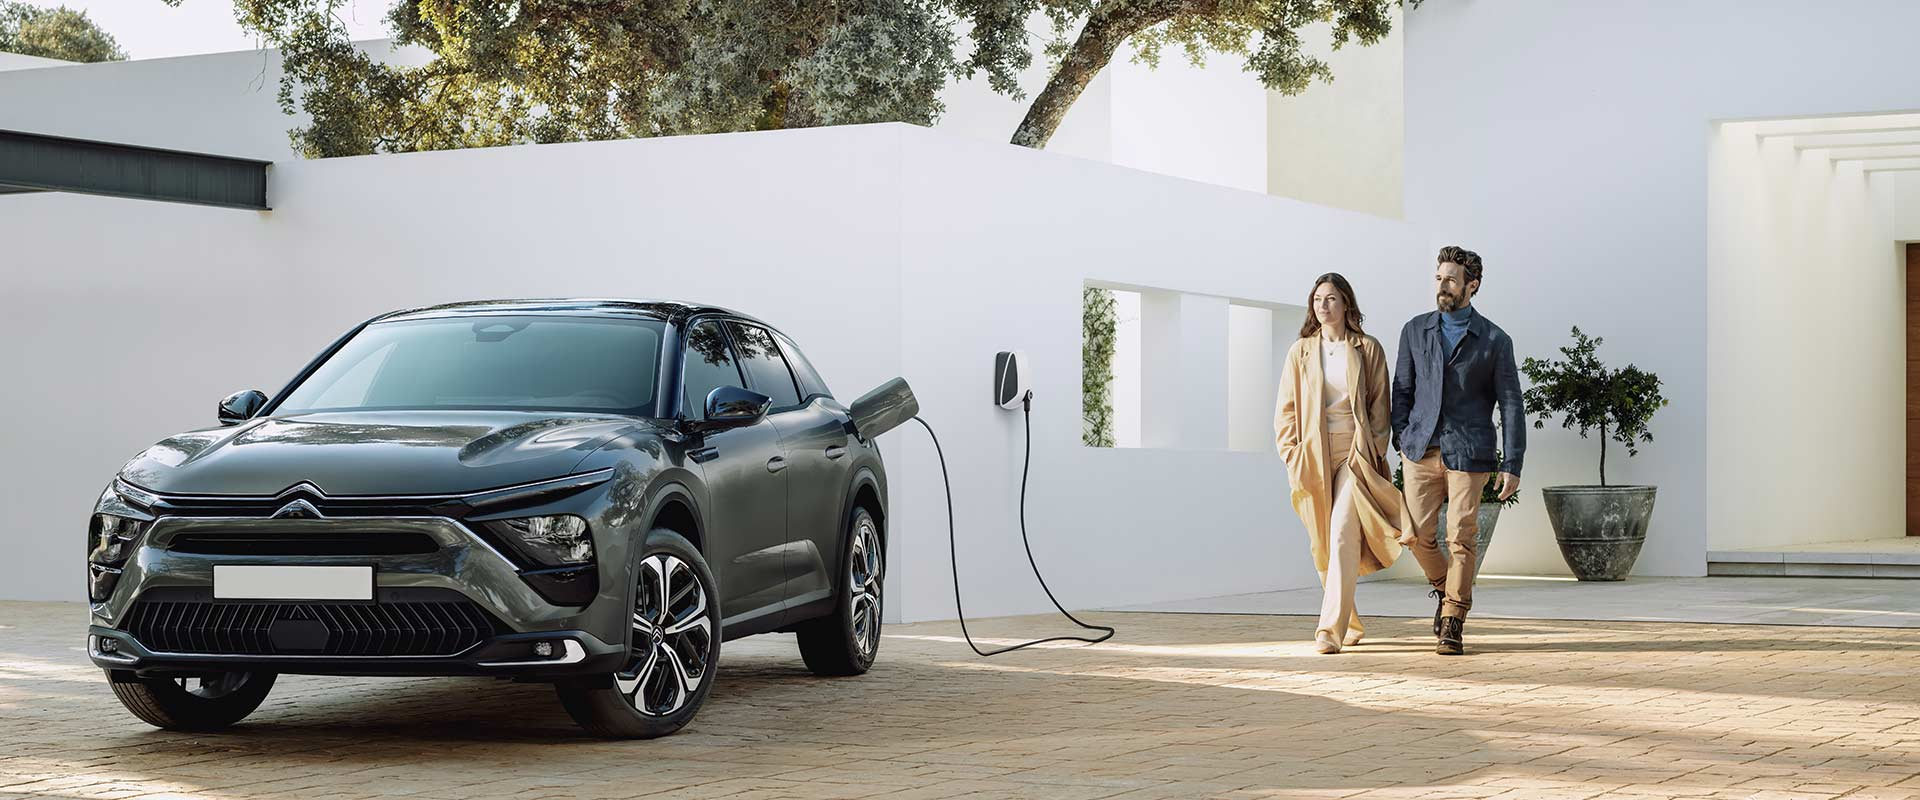 new-citroen-c5-x-electric-car